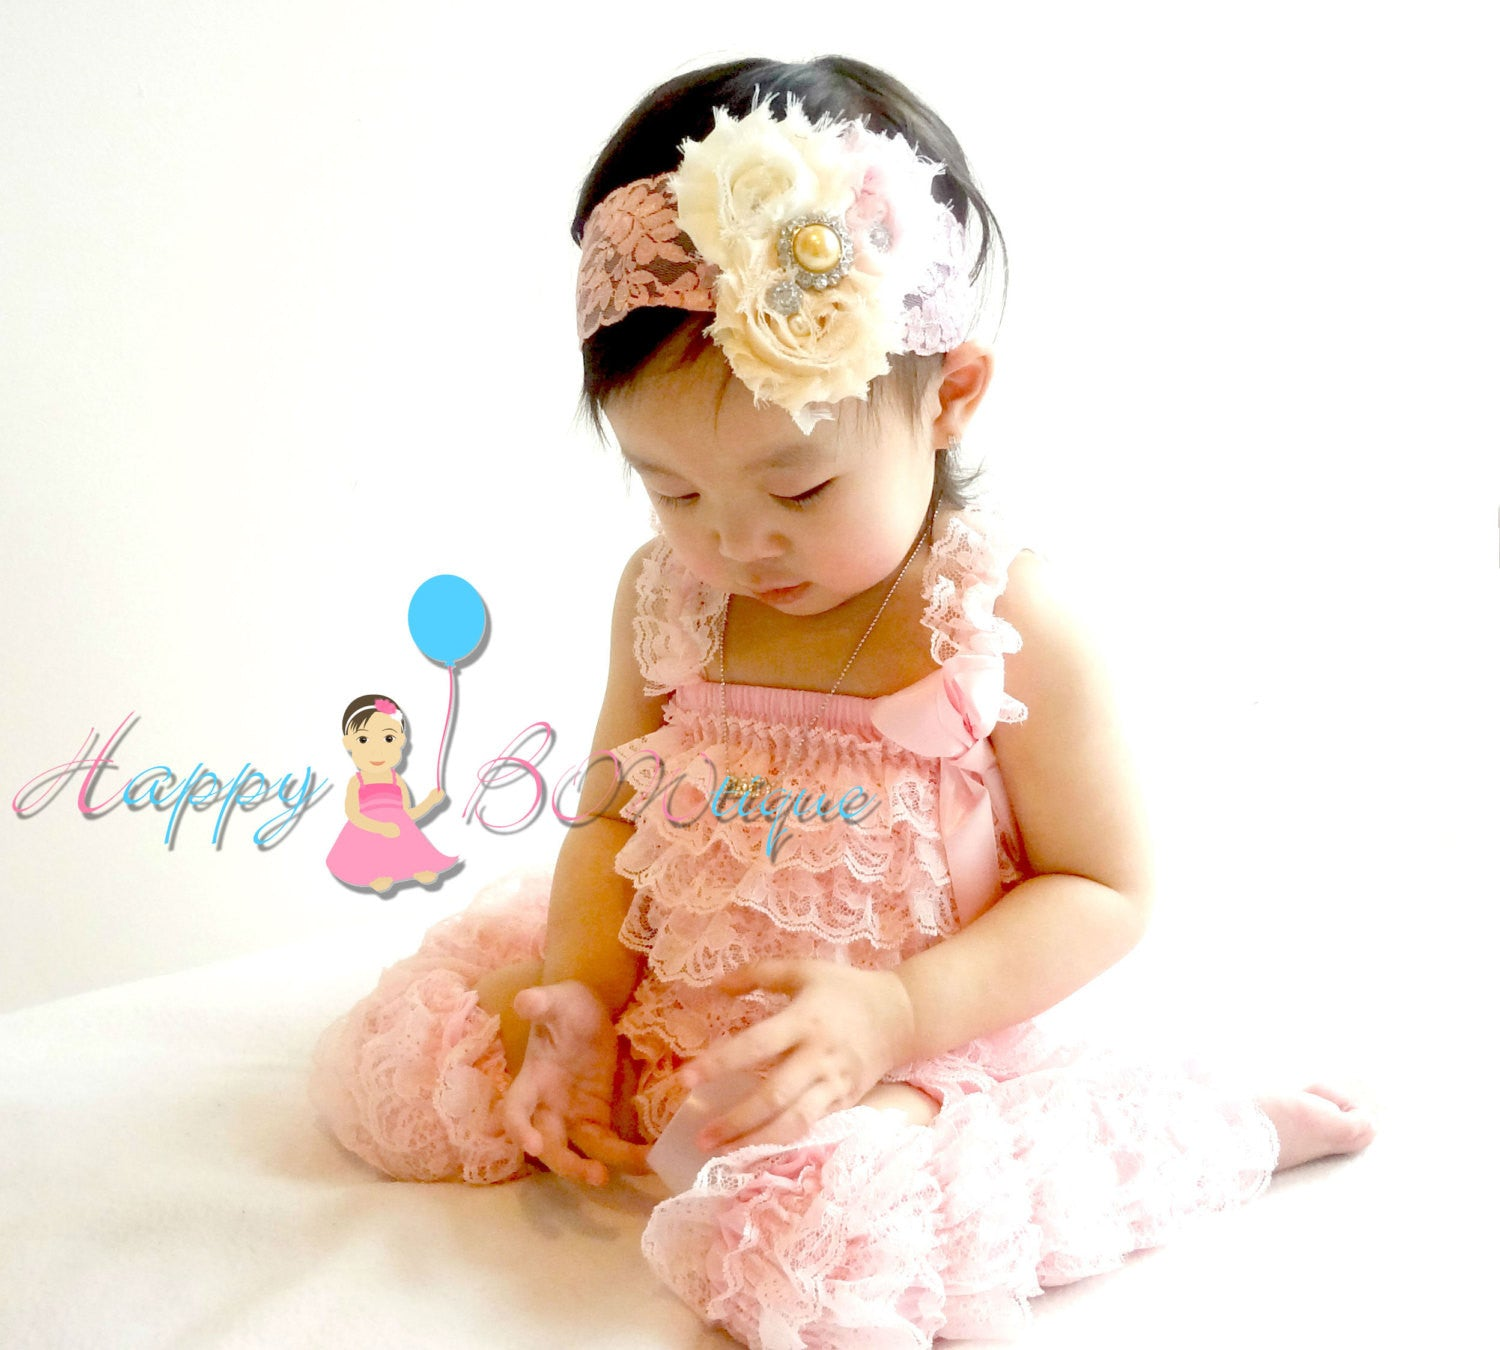 Champagne Pink Lace Romper set - Happy BOWtique - children's clothing, Baby Girl clothing